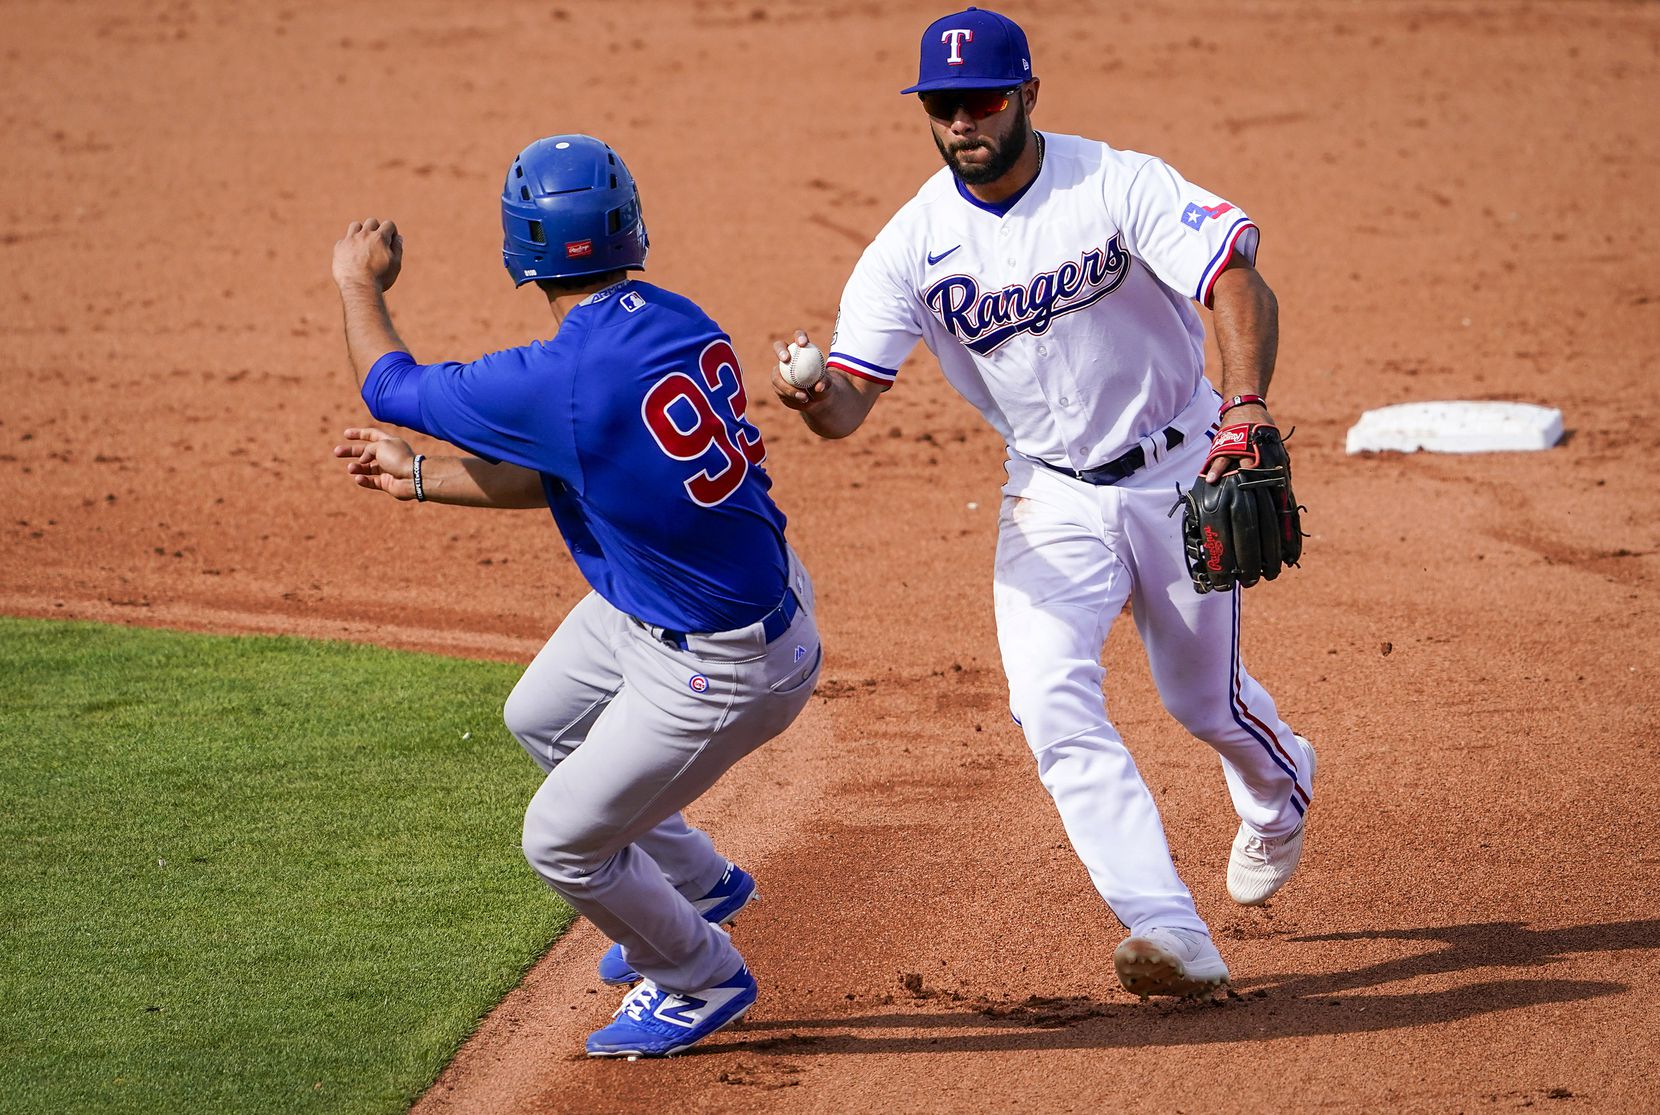 Texas Rangers shortstop Isiah Kiner-Falefa chases down the Chicago CubsÕ Alfonso Rivas to apply the tag and start a double play on a grounder by Ian Miller during the sixth inning of a spring training game at Surprise Stadium on Thursday, Feb. 27, 2020, in Surprise, Ariz.